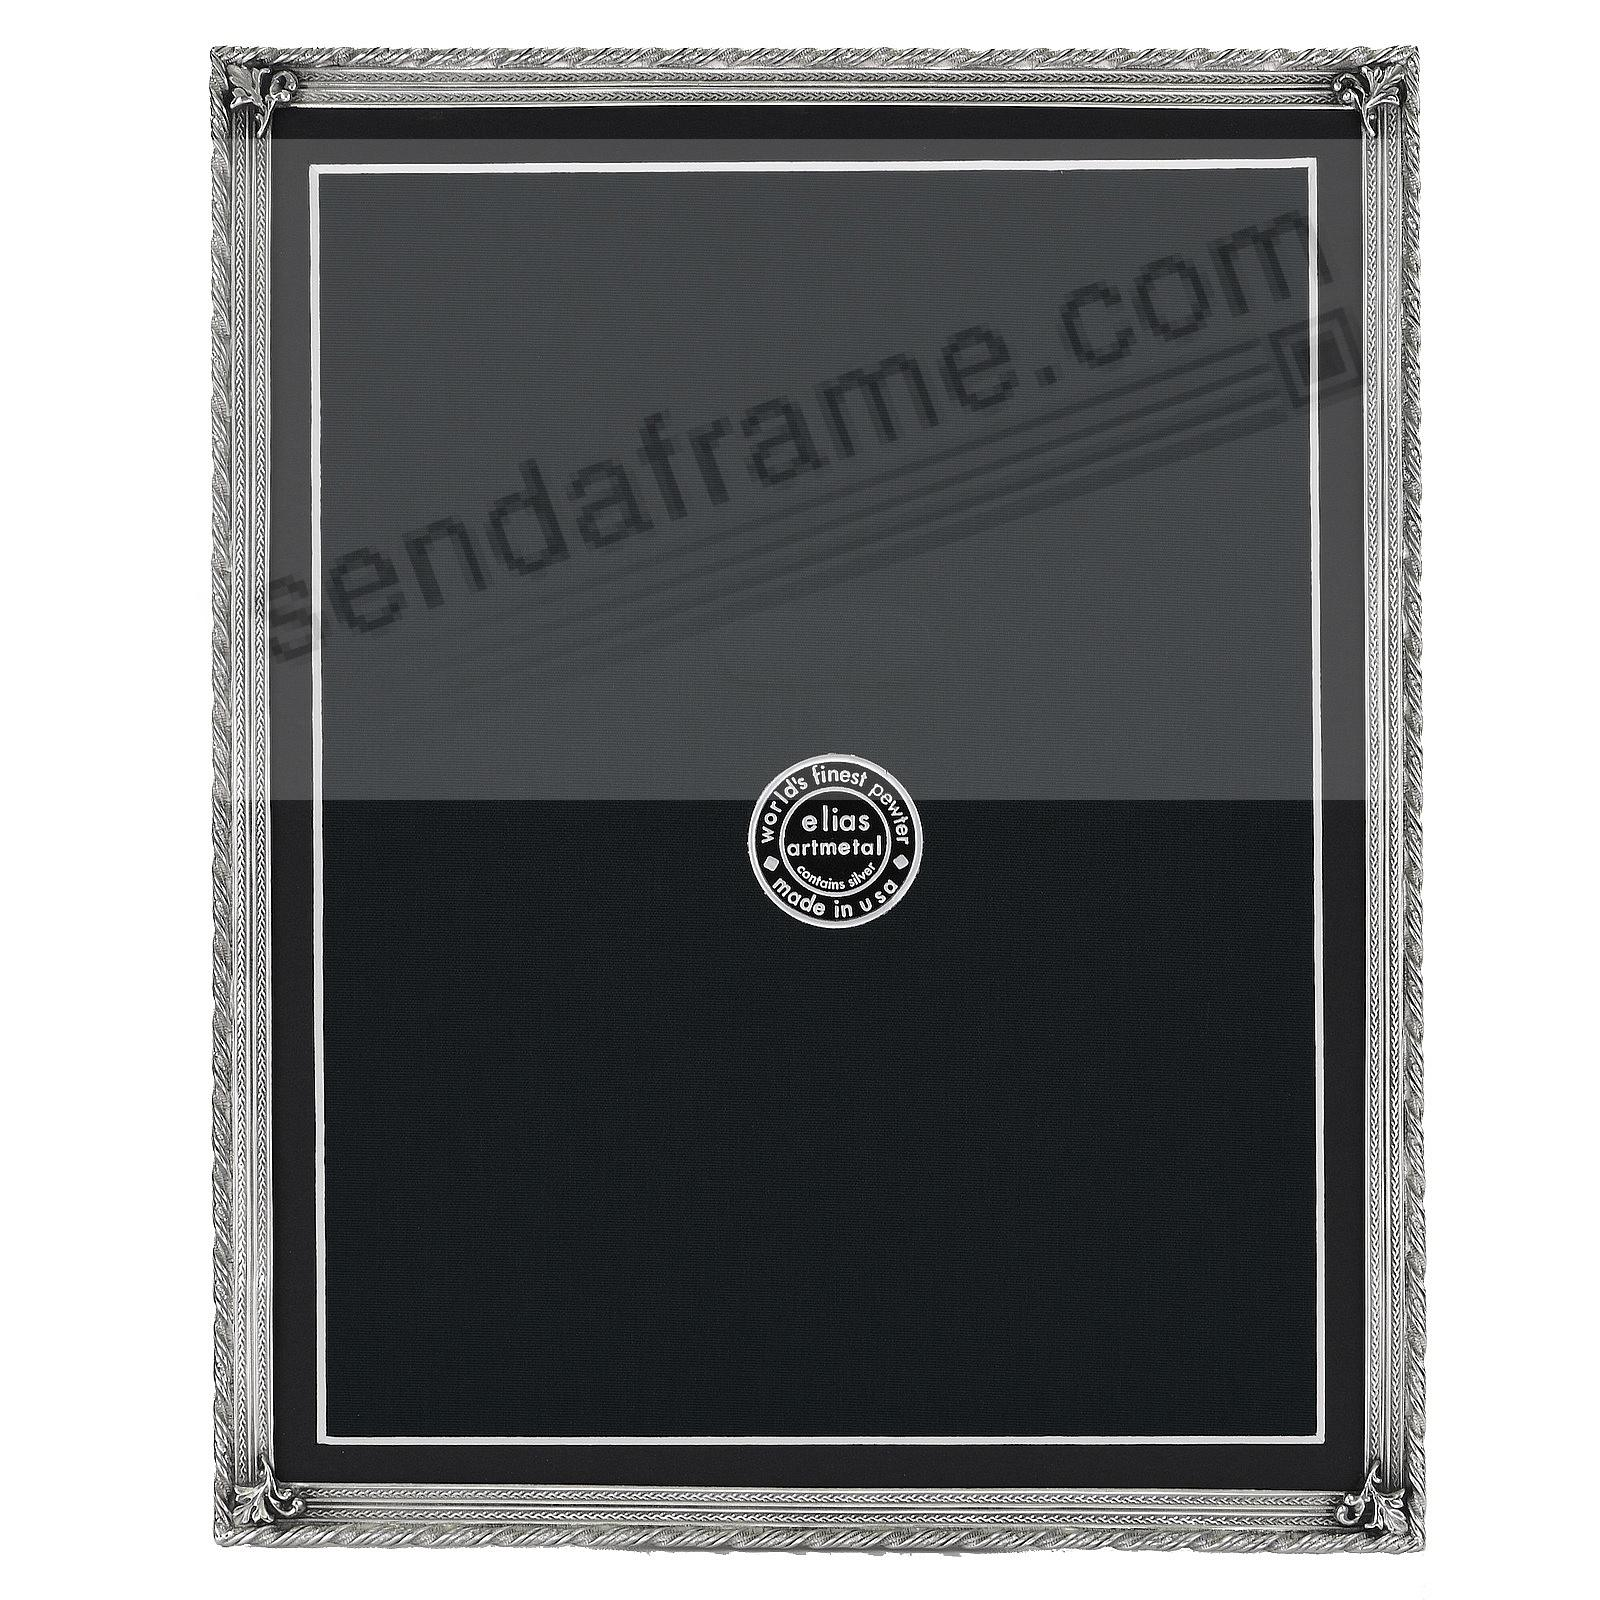 EMPIRE Fine Pewter original 8x10/7x9 frame by Elias Artmetal®